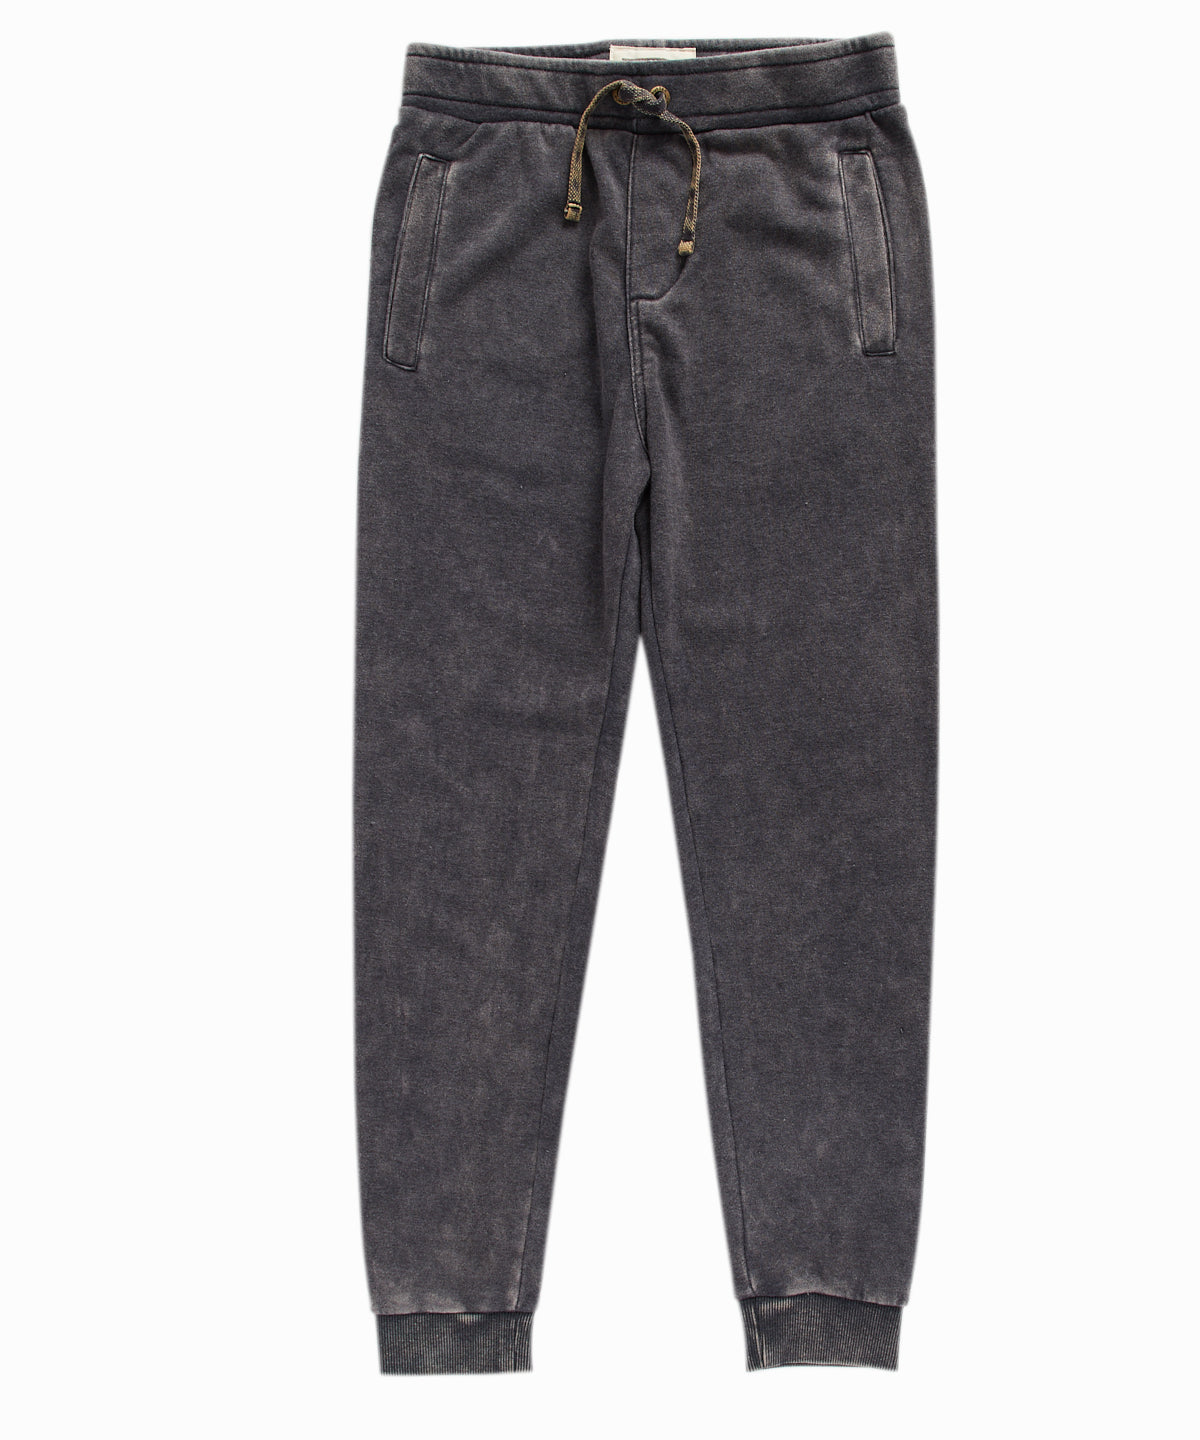 Mineral Wash Black Jogger Pants